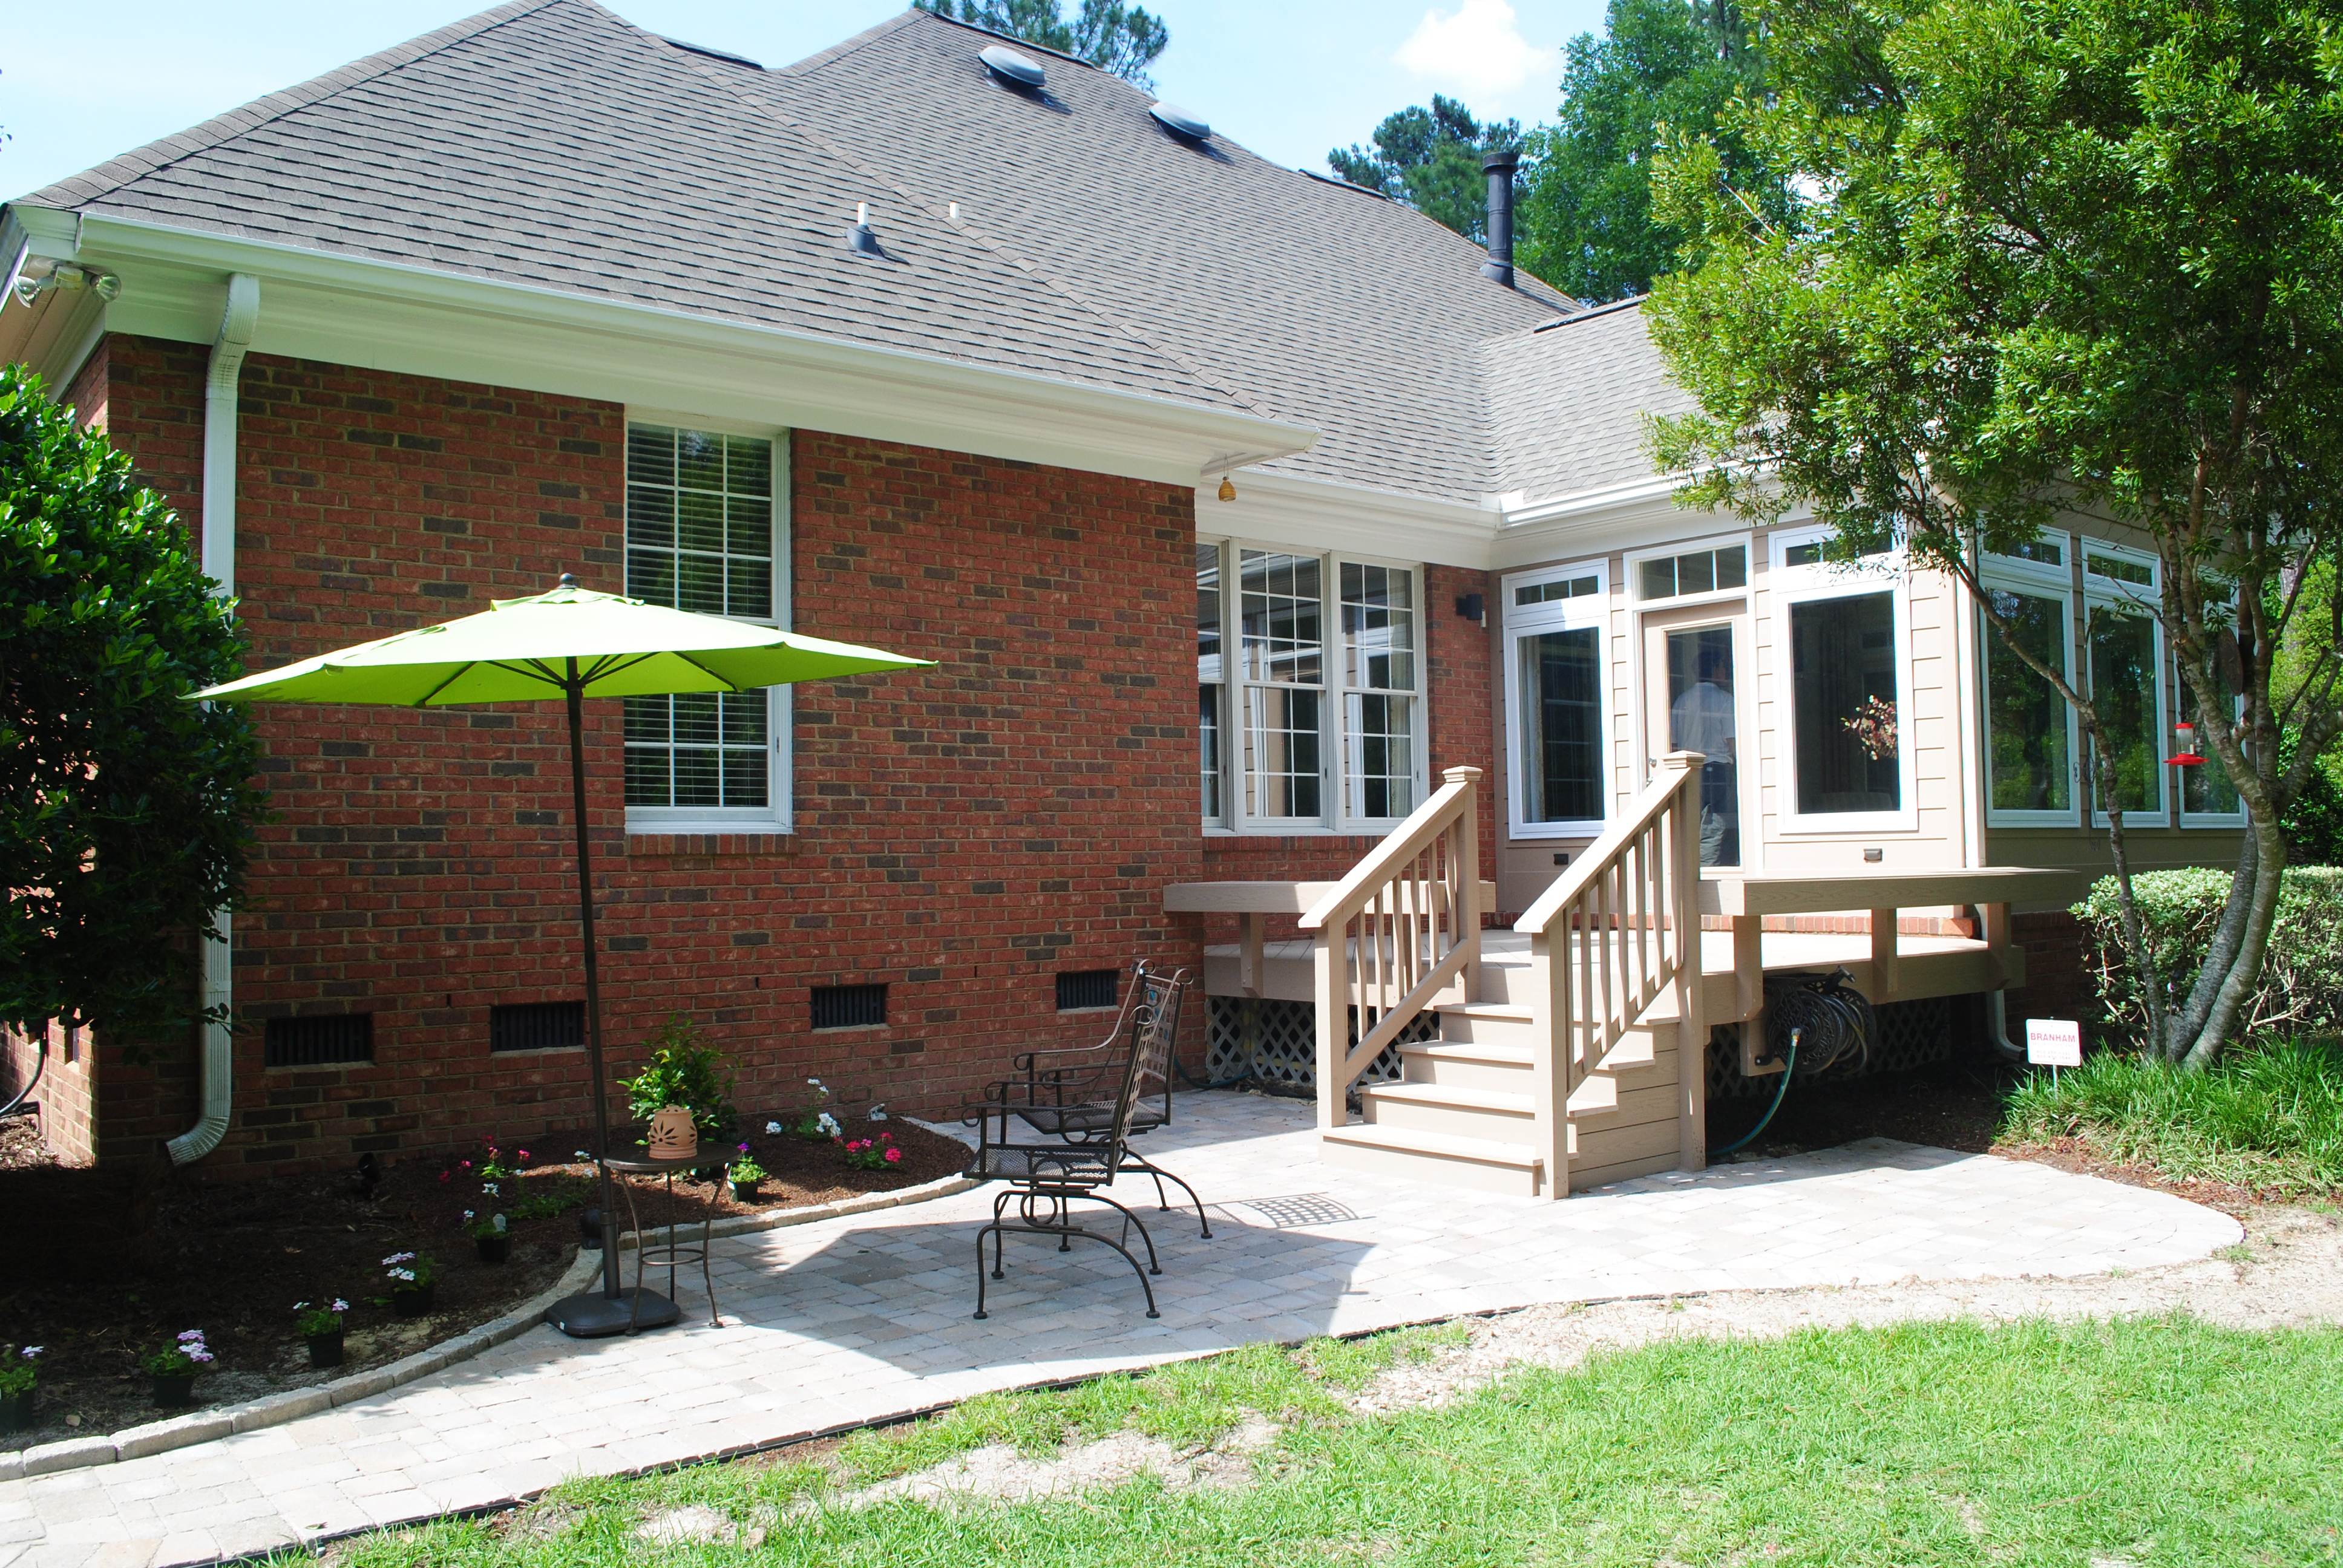 Custom decks porches patios sunrooms and more for Build sunroom on deck